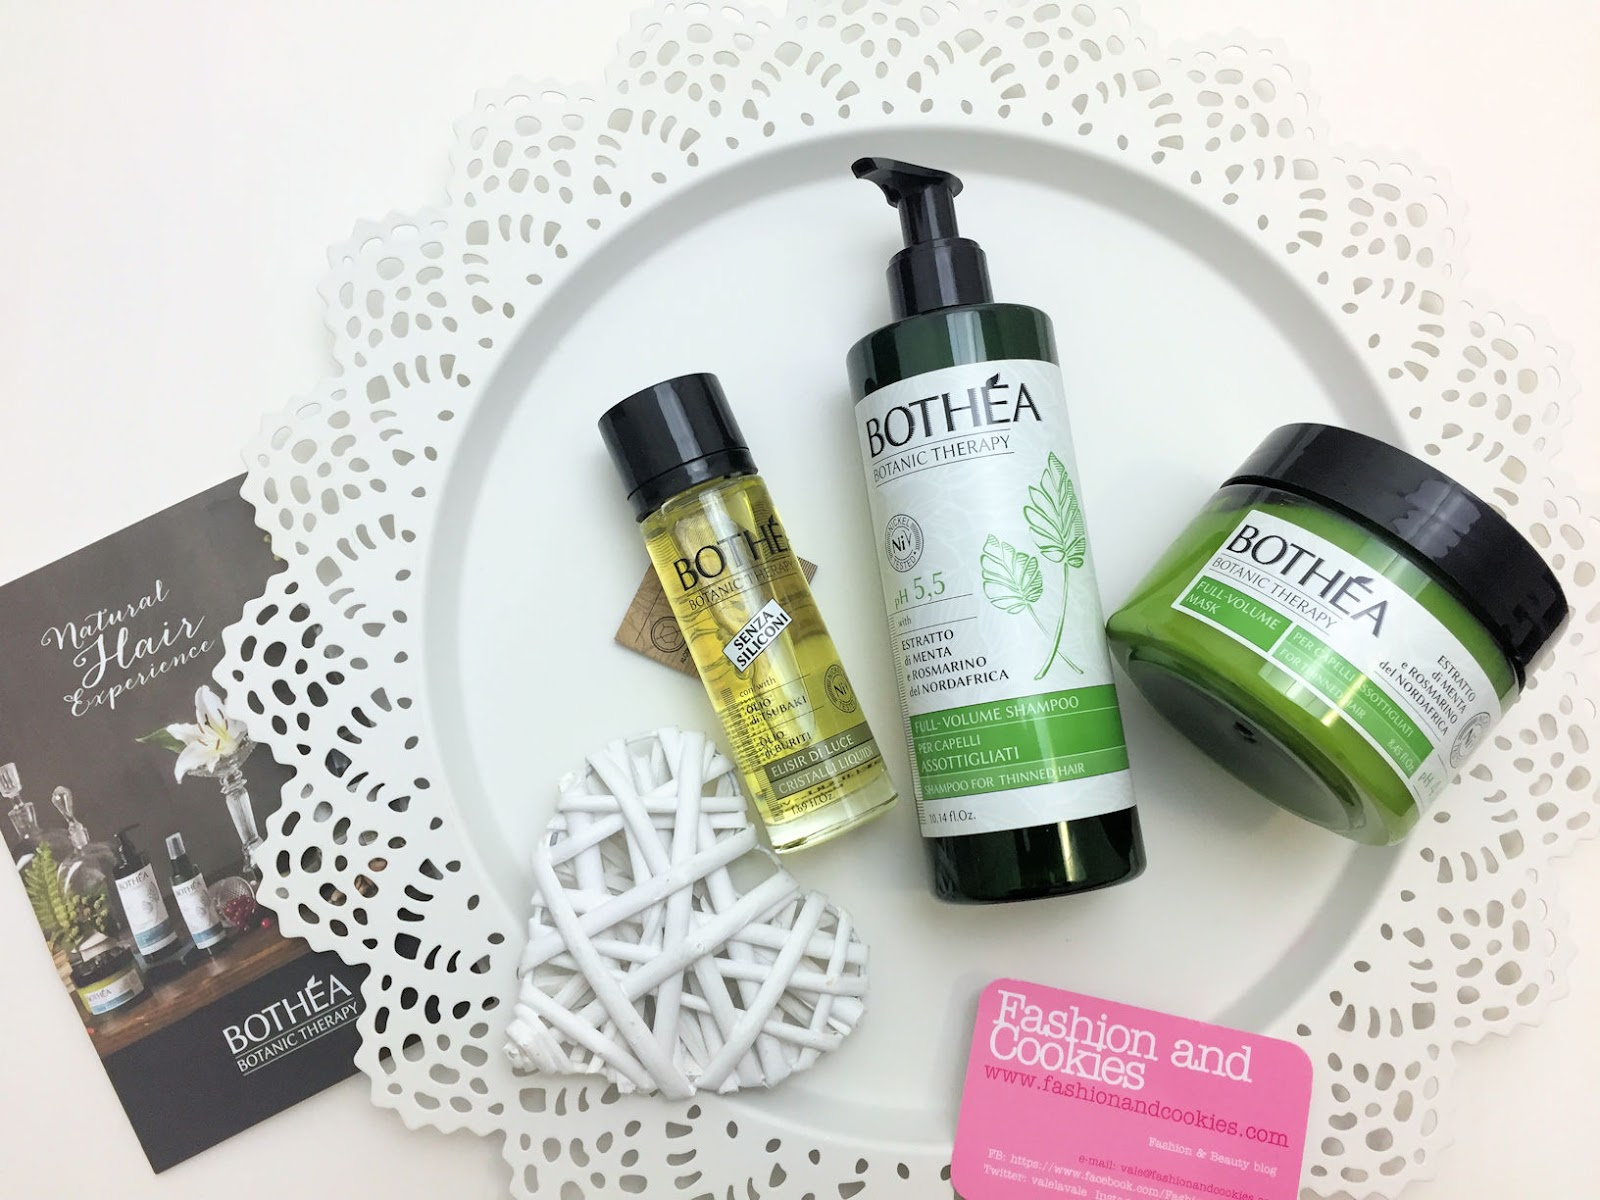 Bothéa Natural Hair Experience: prodotti naturali per capelli, recensione su Fashion and Cookies fashion blog, fashion blogger style